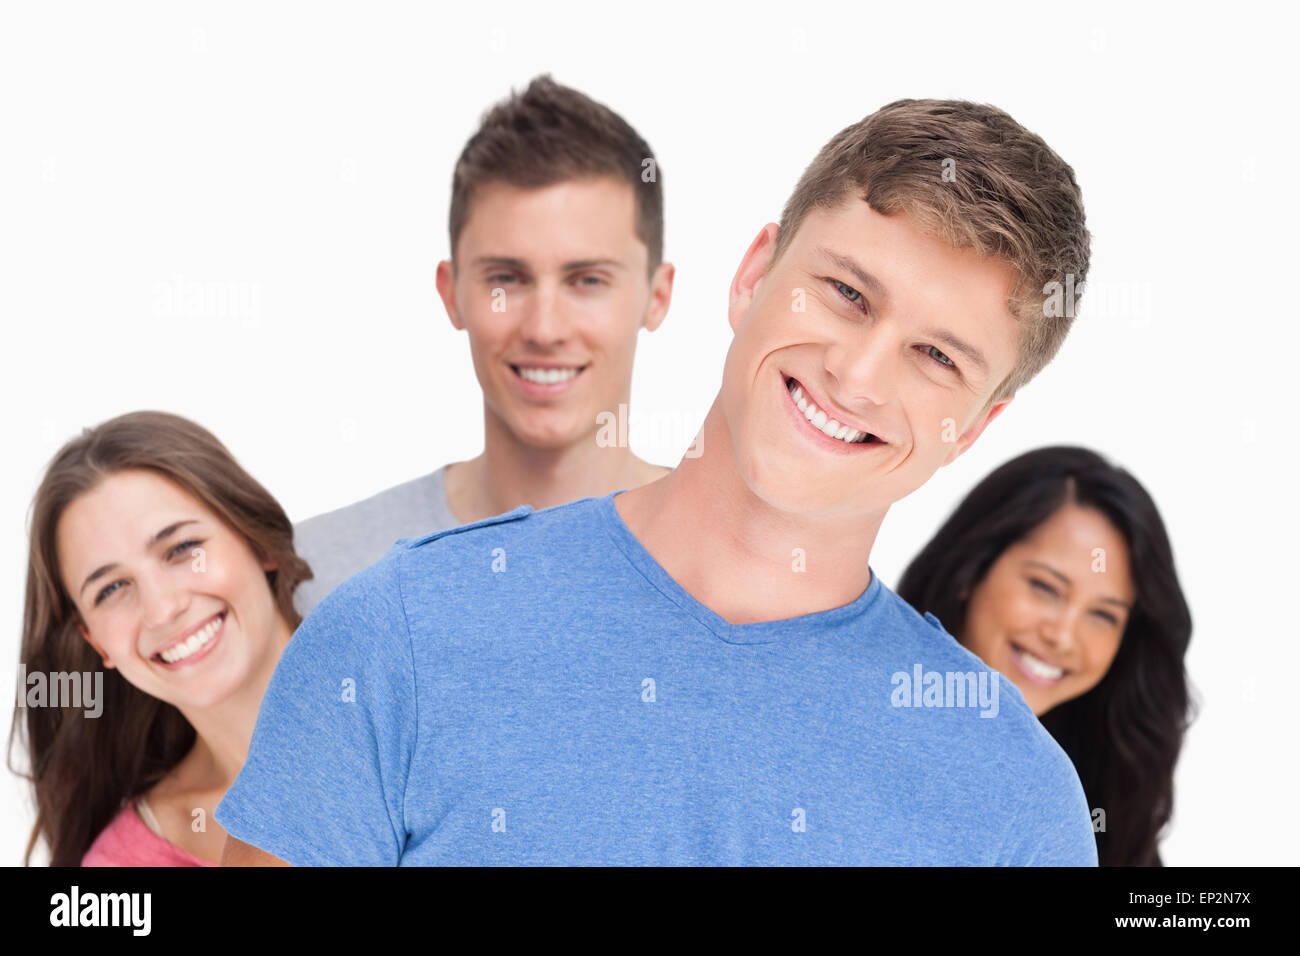 A man smiling with his head tilted and his friends behind him - Stock Image